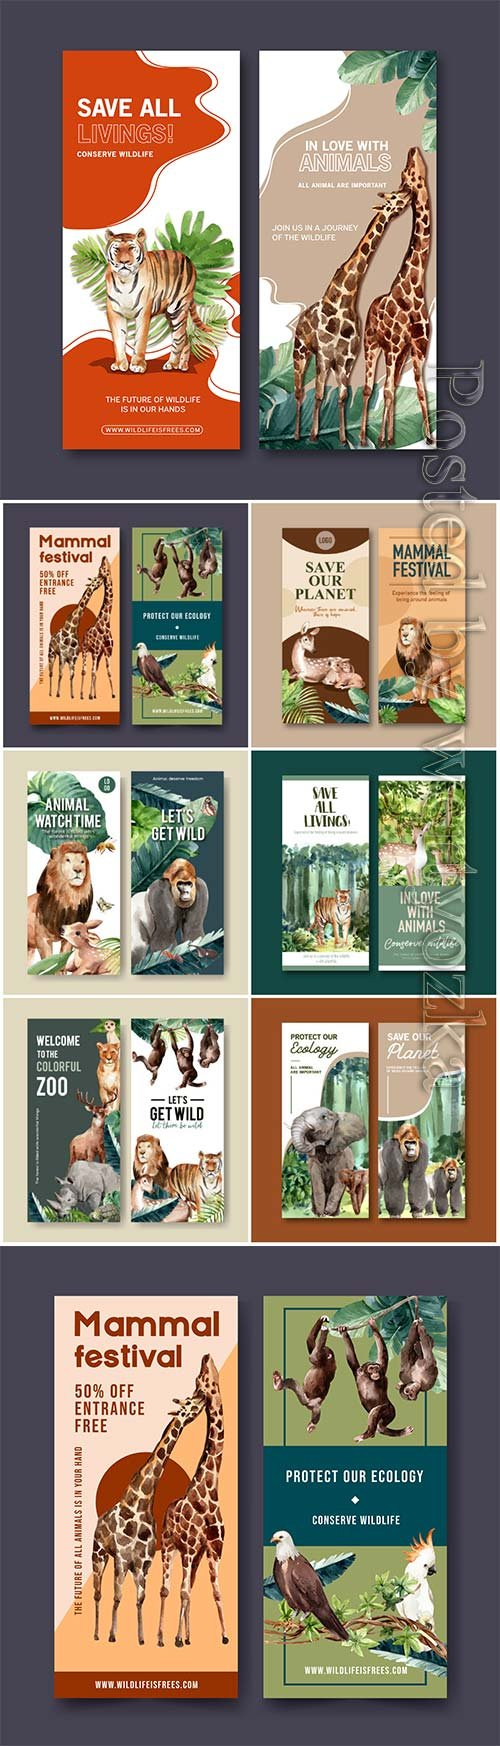 Zoo flyer design with elephant, gorilla watercolor illustration